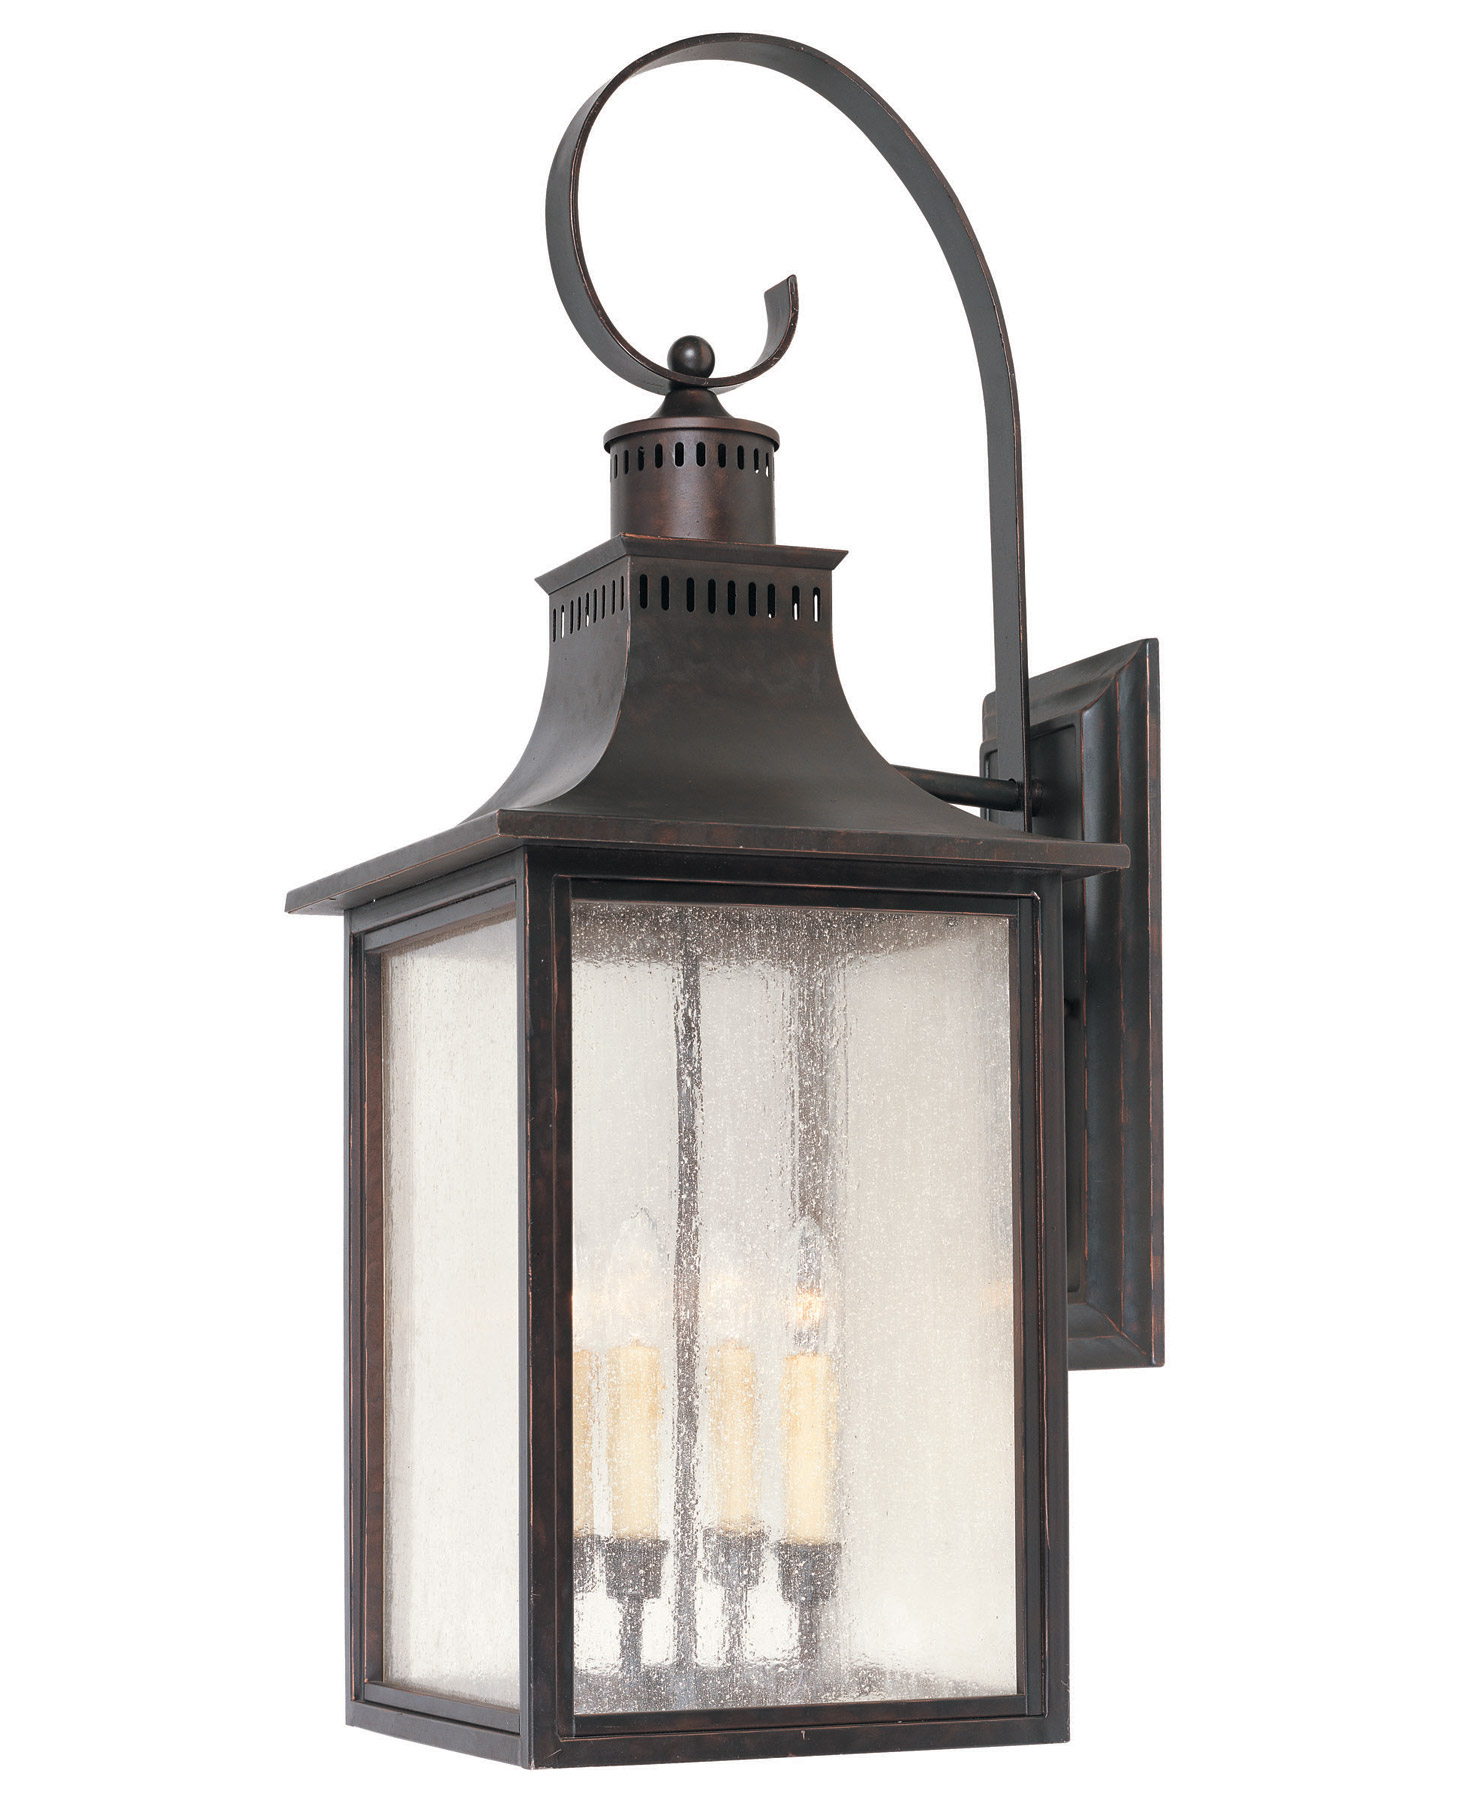 House 5-257-13 Monte Grande Outdoor Wall Mount Lantern